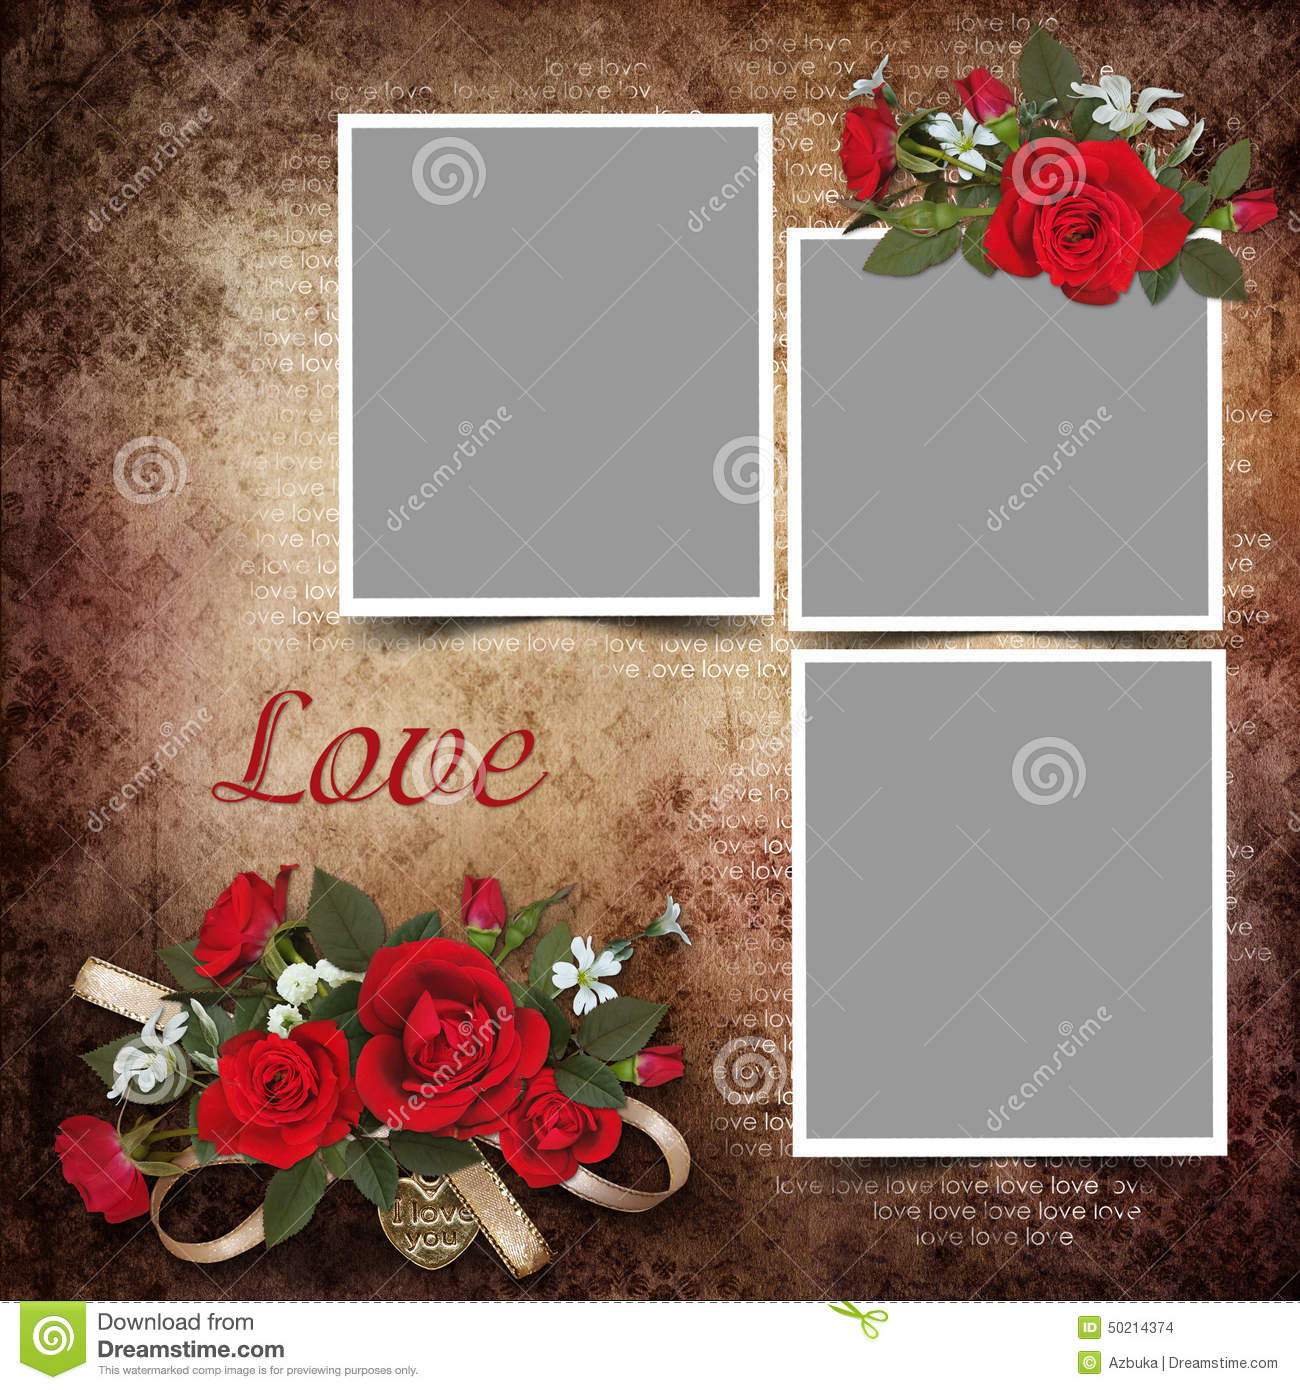 Good Vintage Love Background With Frames And Roses. Pendant, Memory.